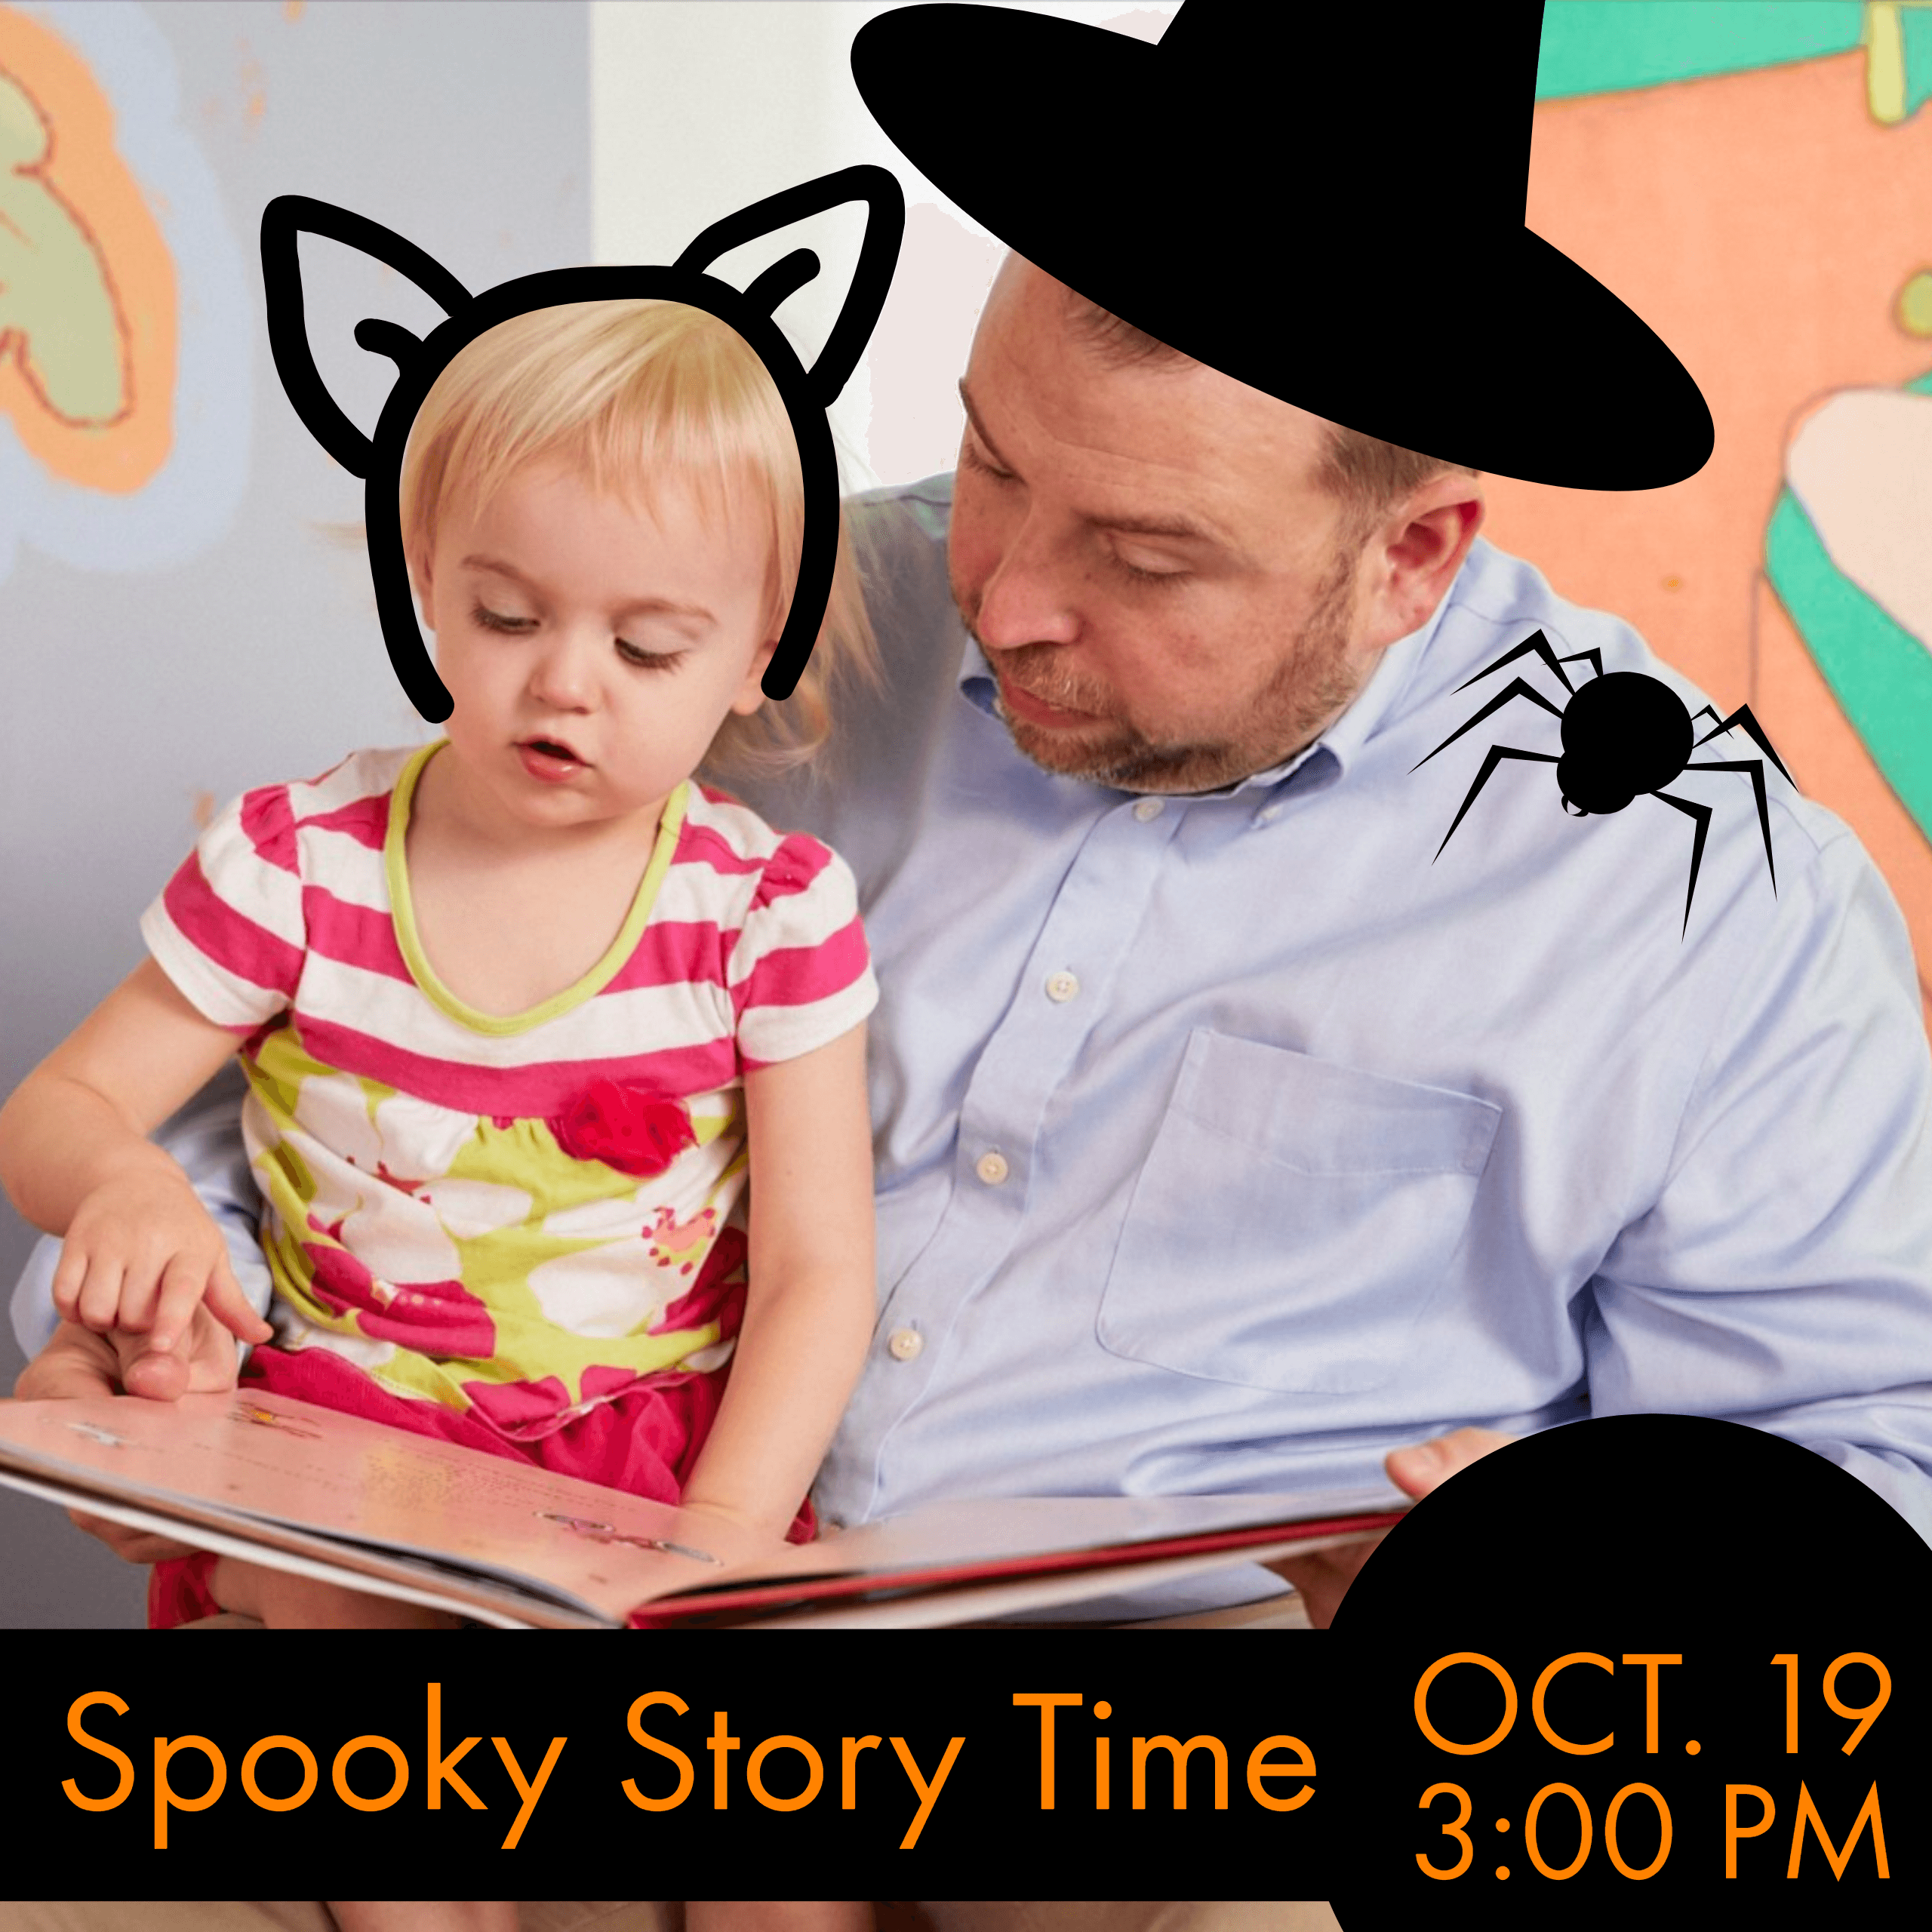 Special spooky edition of Storytime at the American Writers Museum on October 19 at 3:00 pm